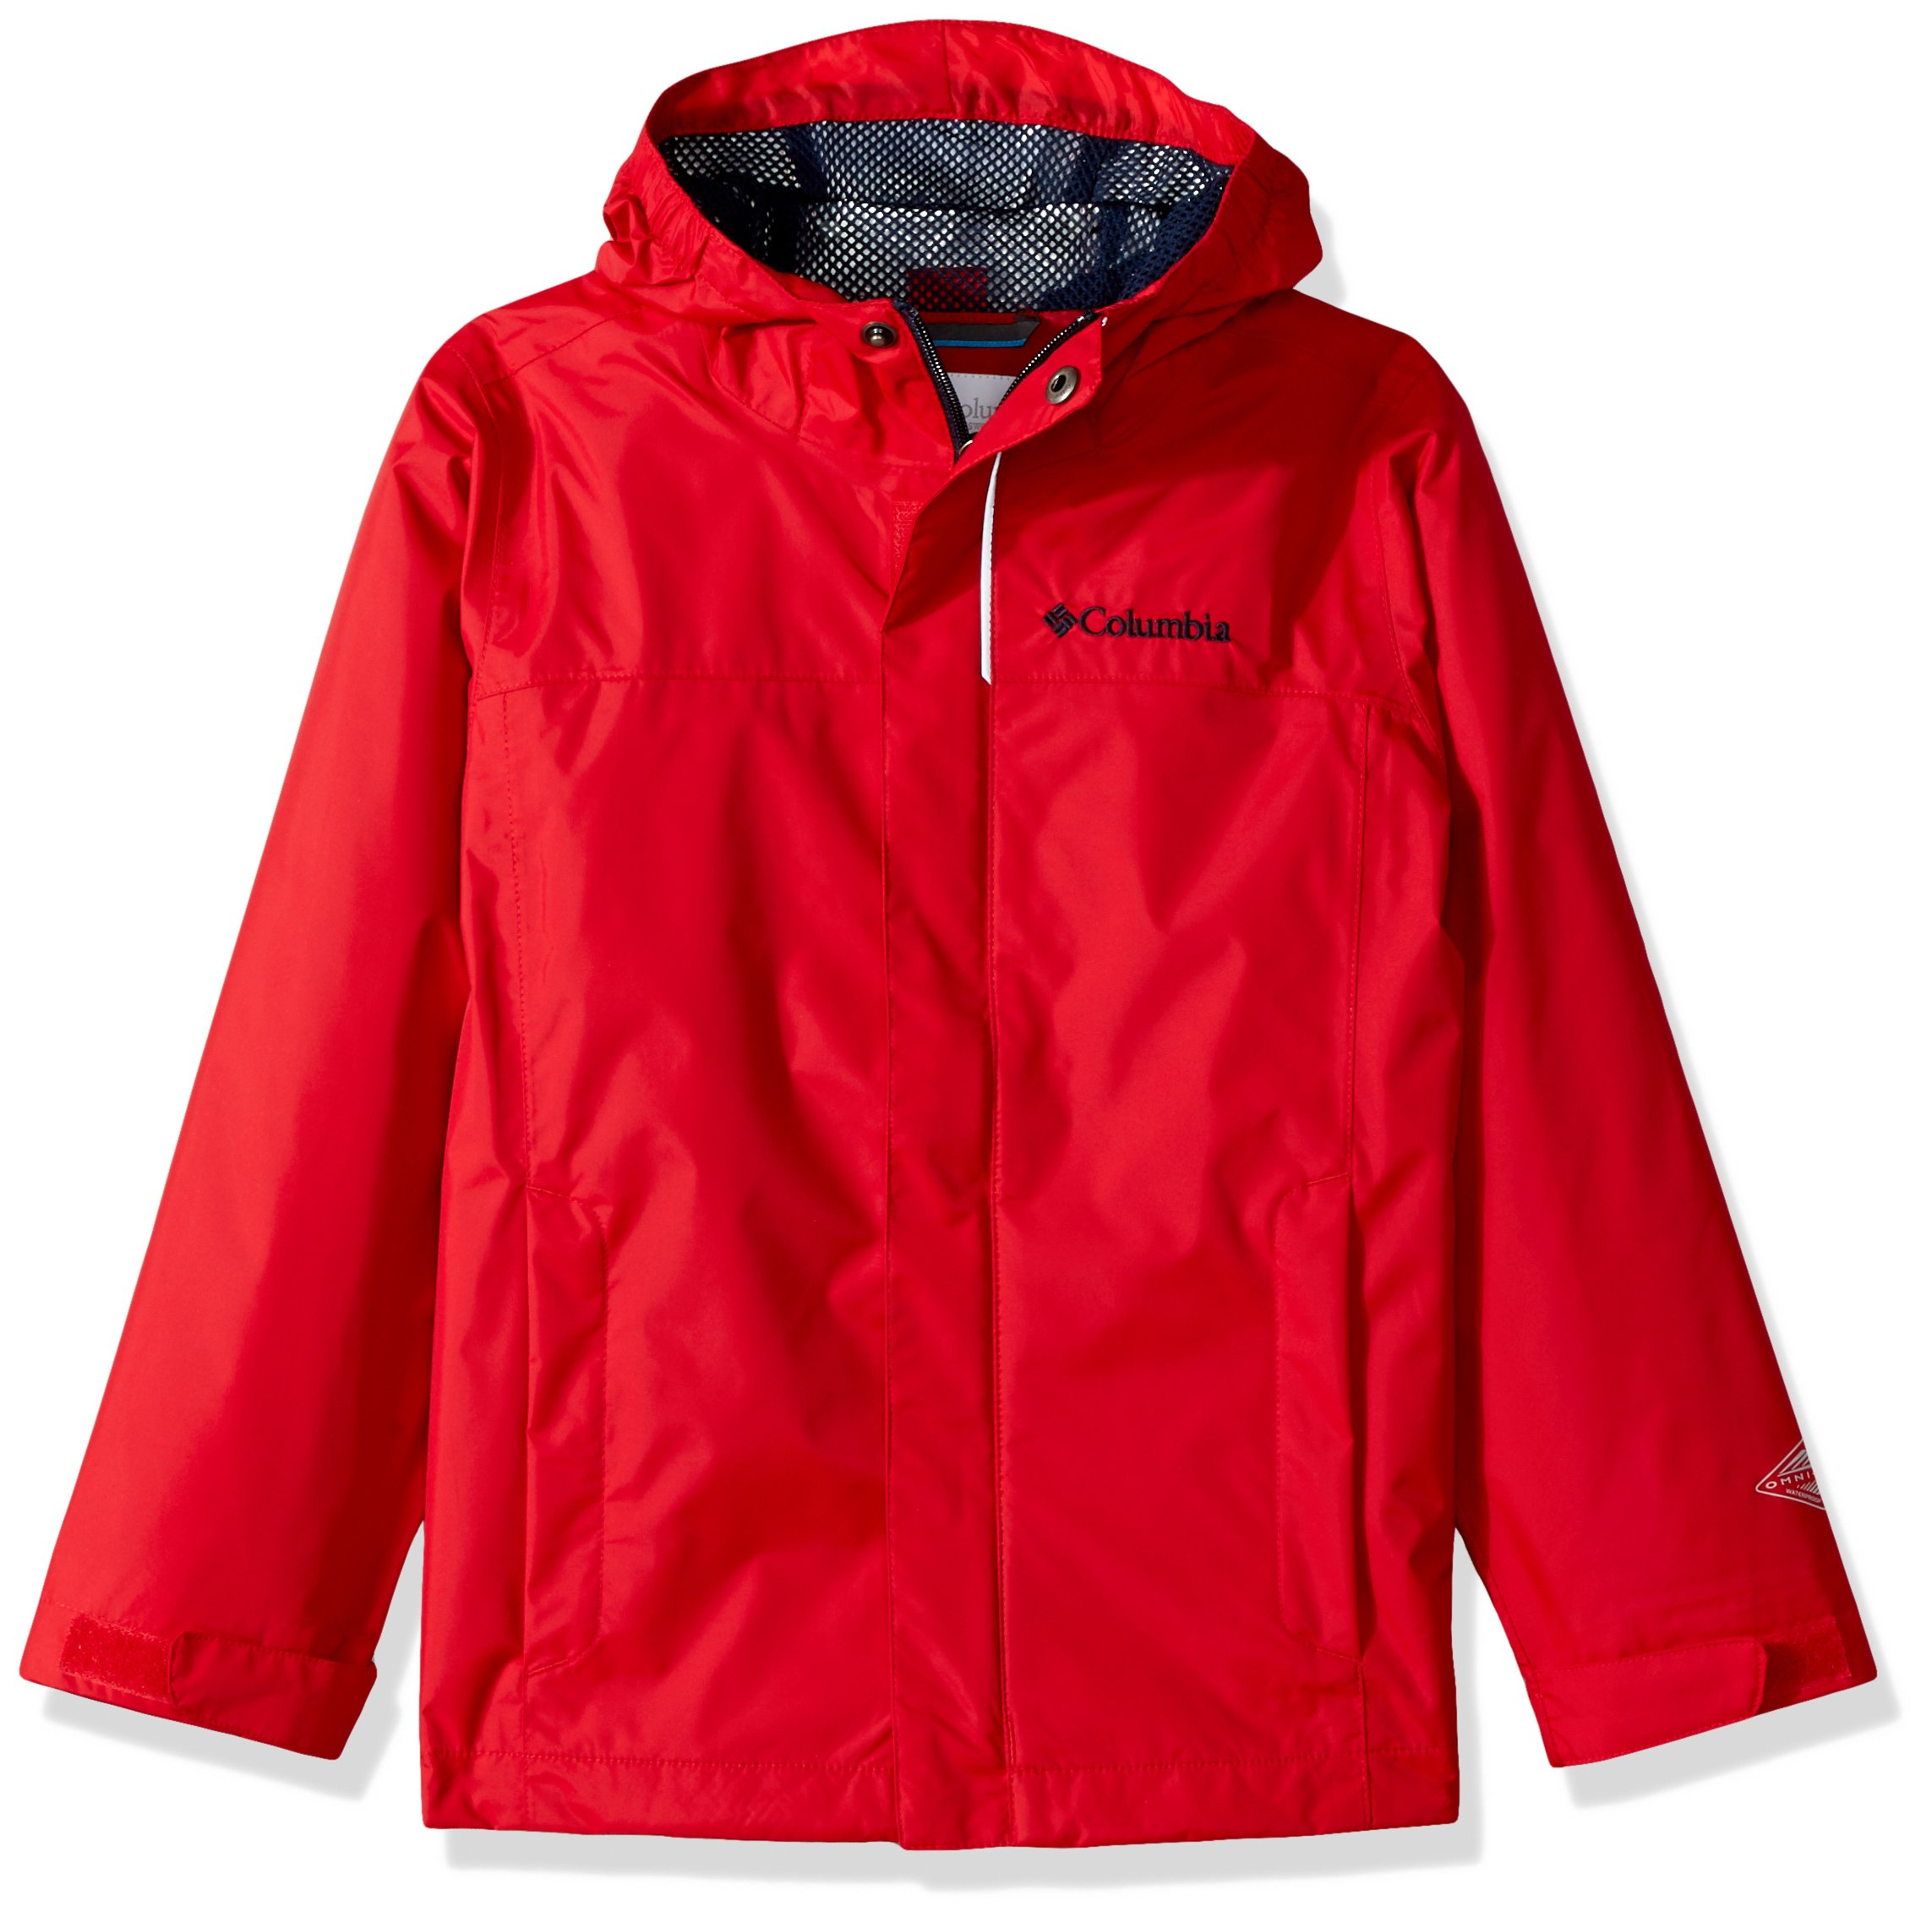 Columbia Little Boys' Watertight Jacket, Mountain Red, Small by Columbia